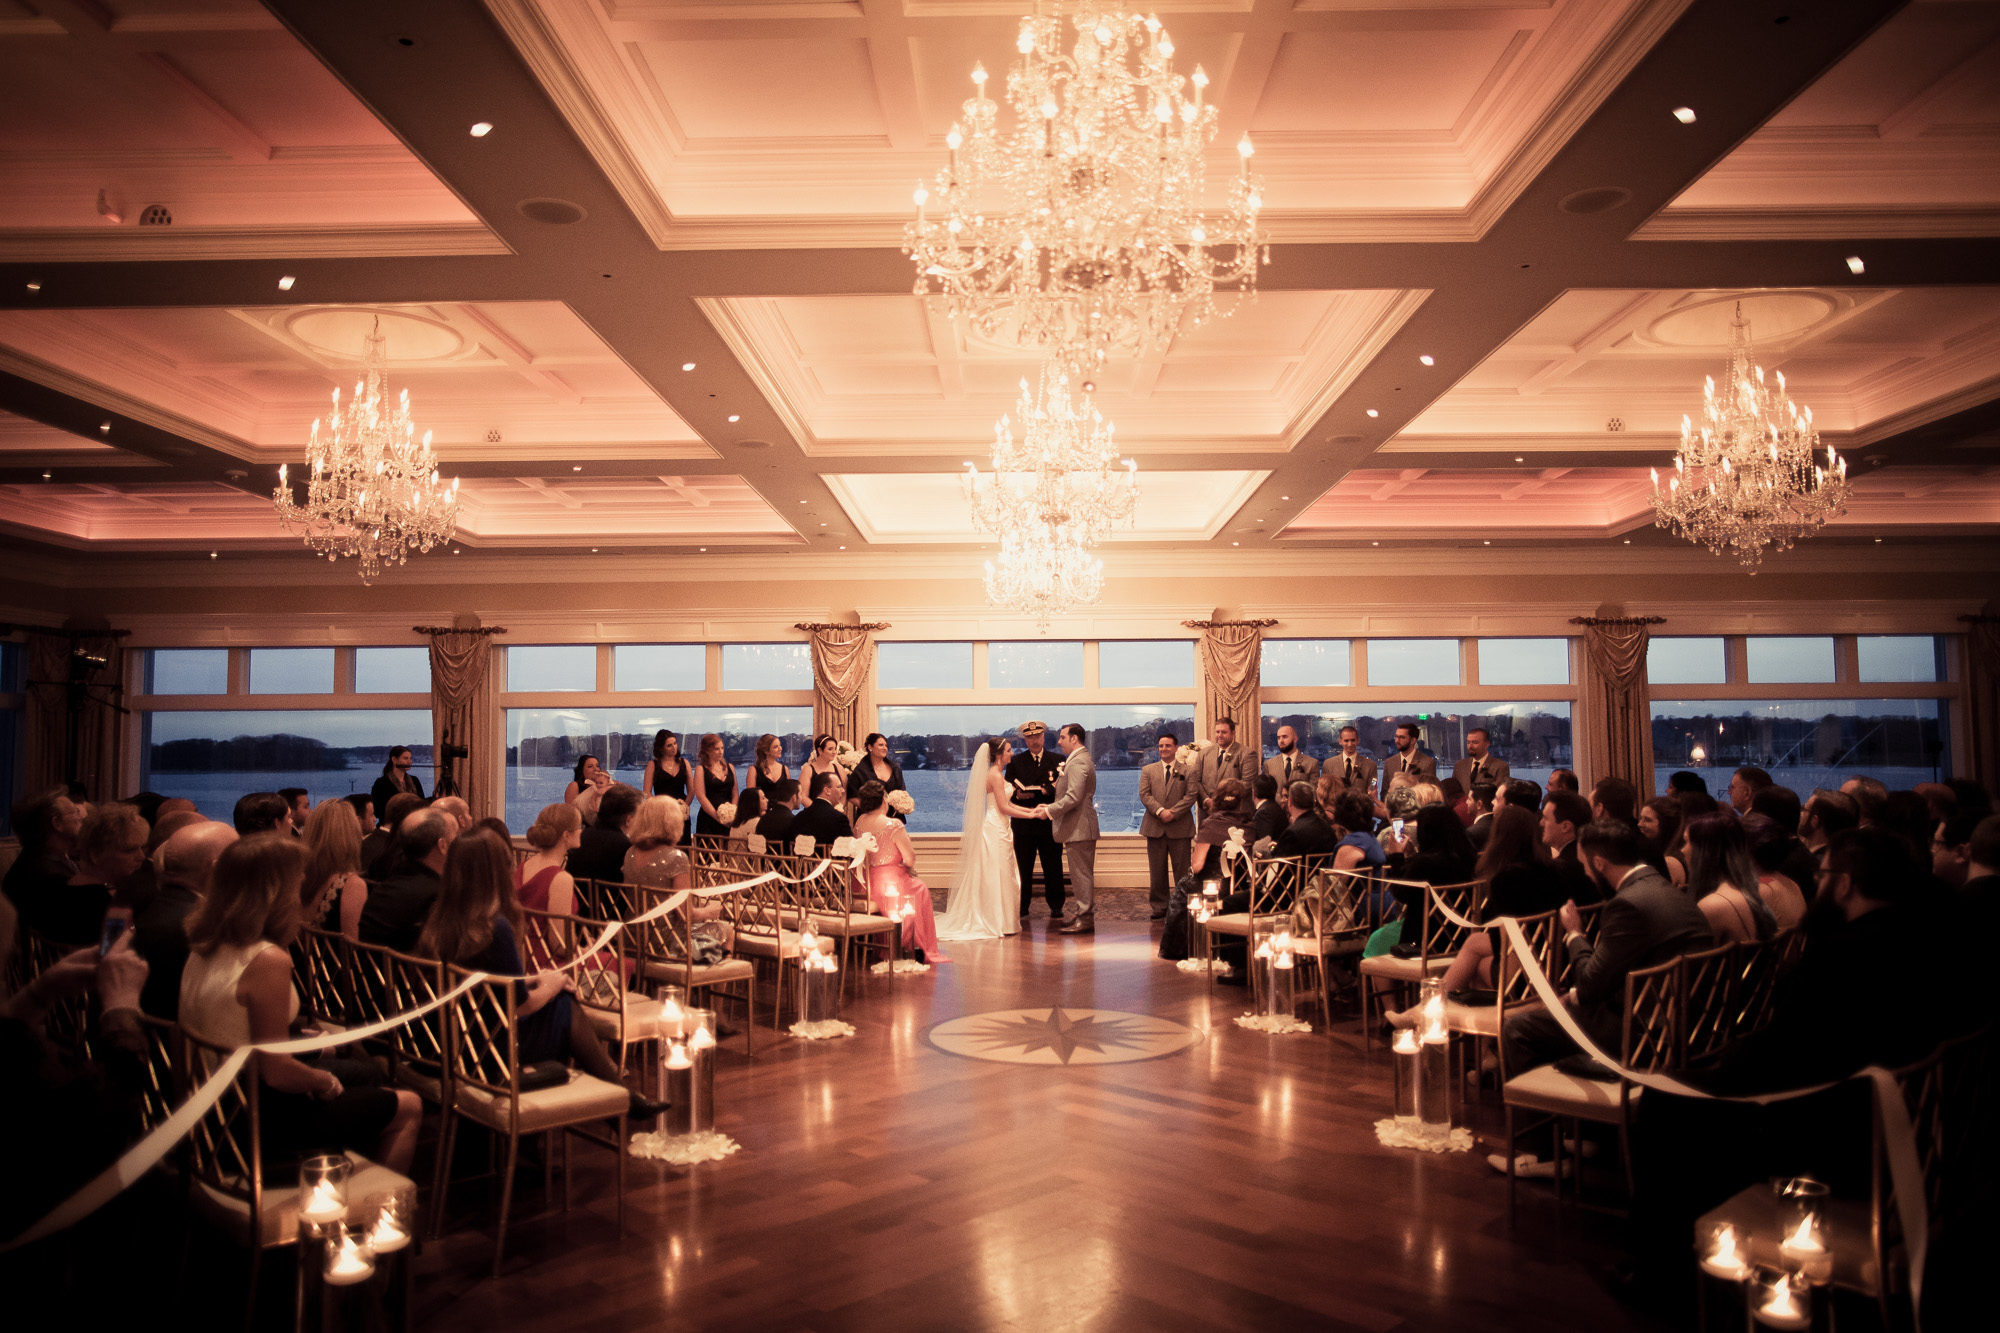 Top Rated Wedding Photographer in Point Pleasant NJ - Jenna Perfette Photography